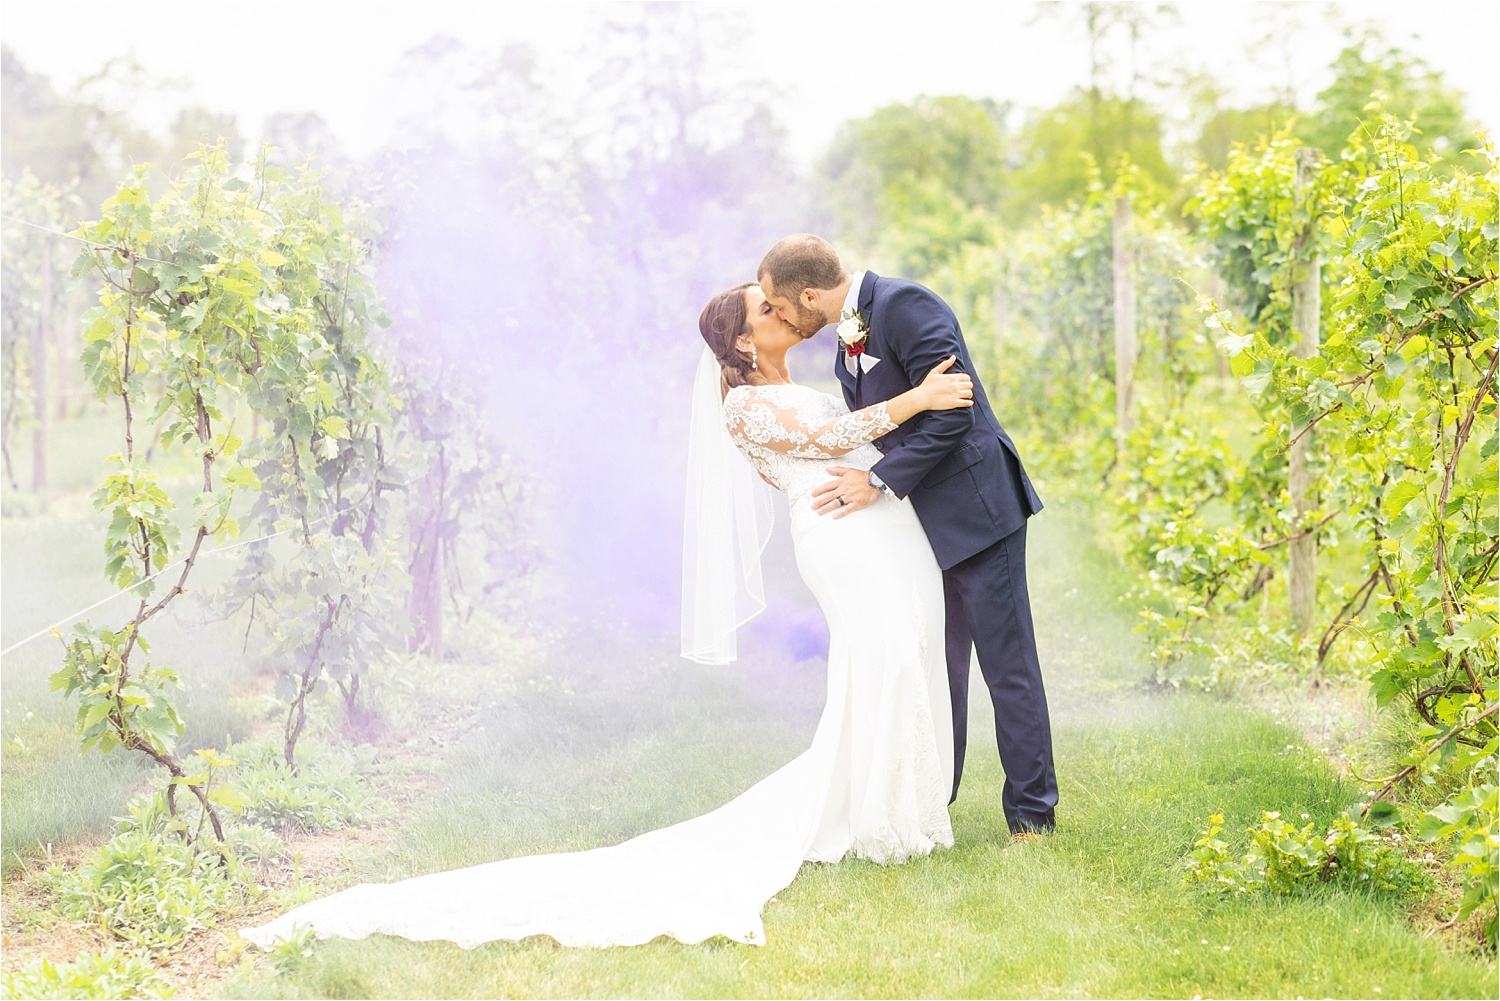 How cool are these smoke bomb wedding photos?! We especially loved the purple smoke grenades! So pretty!